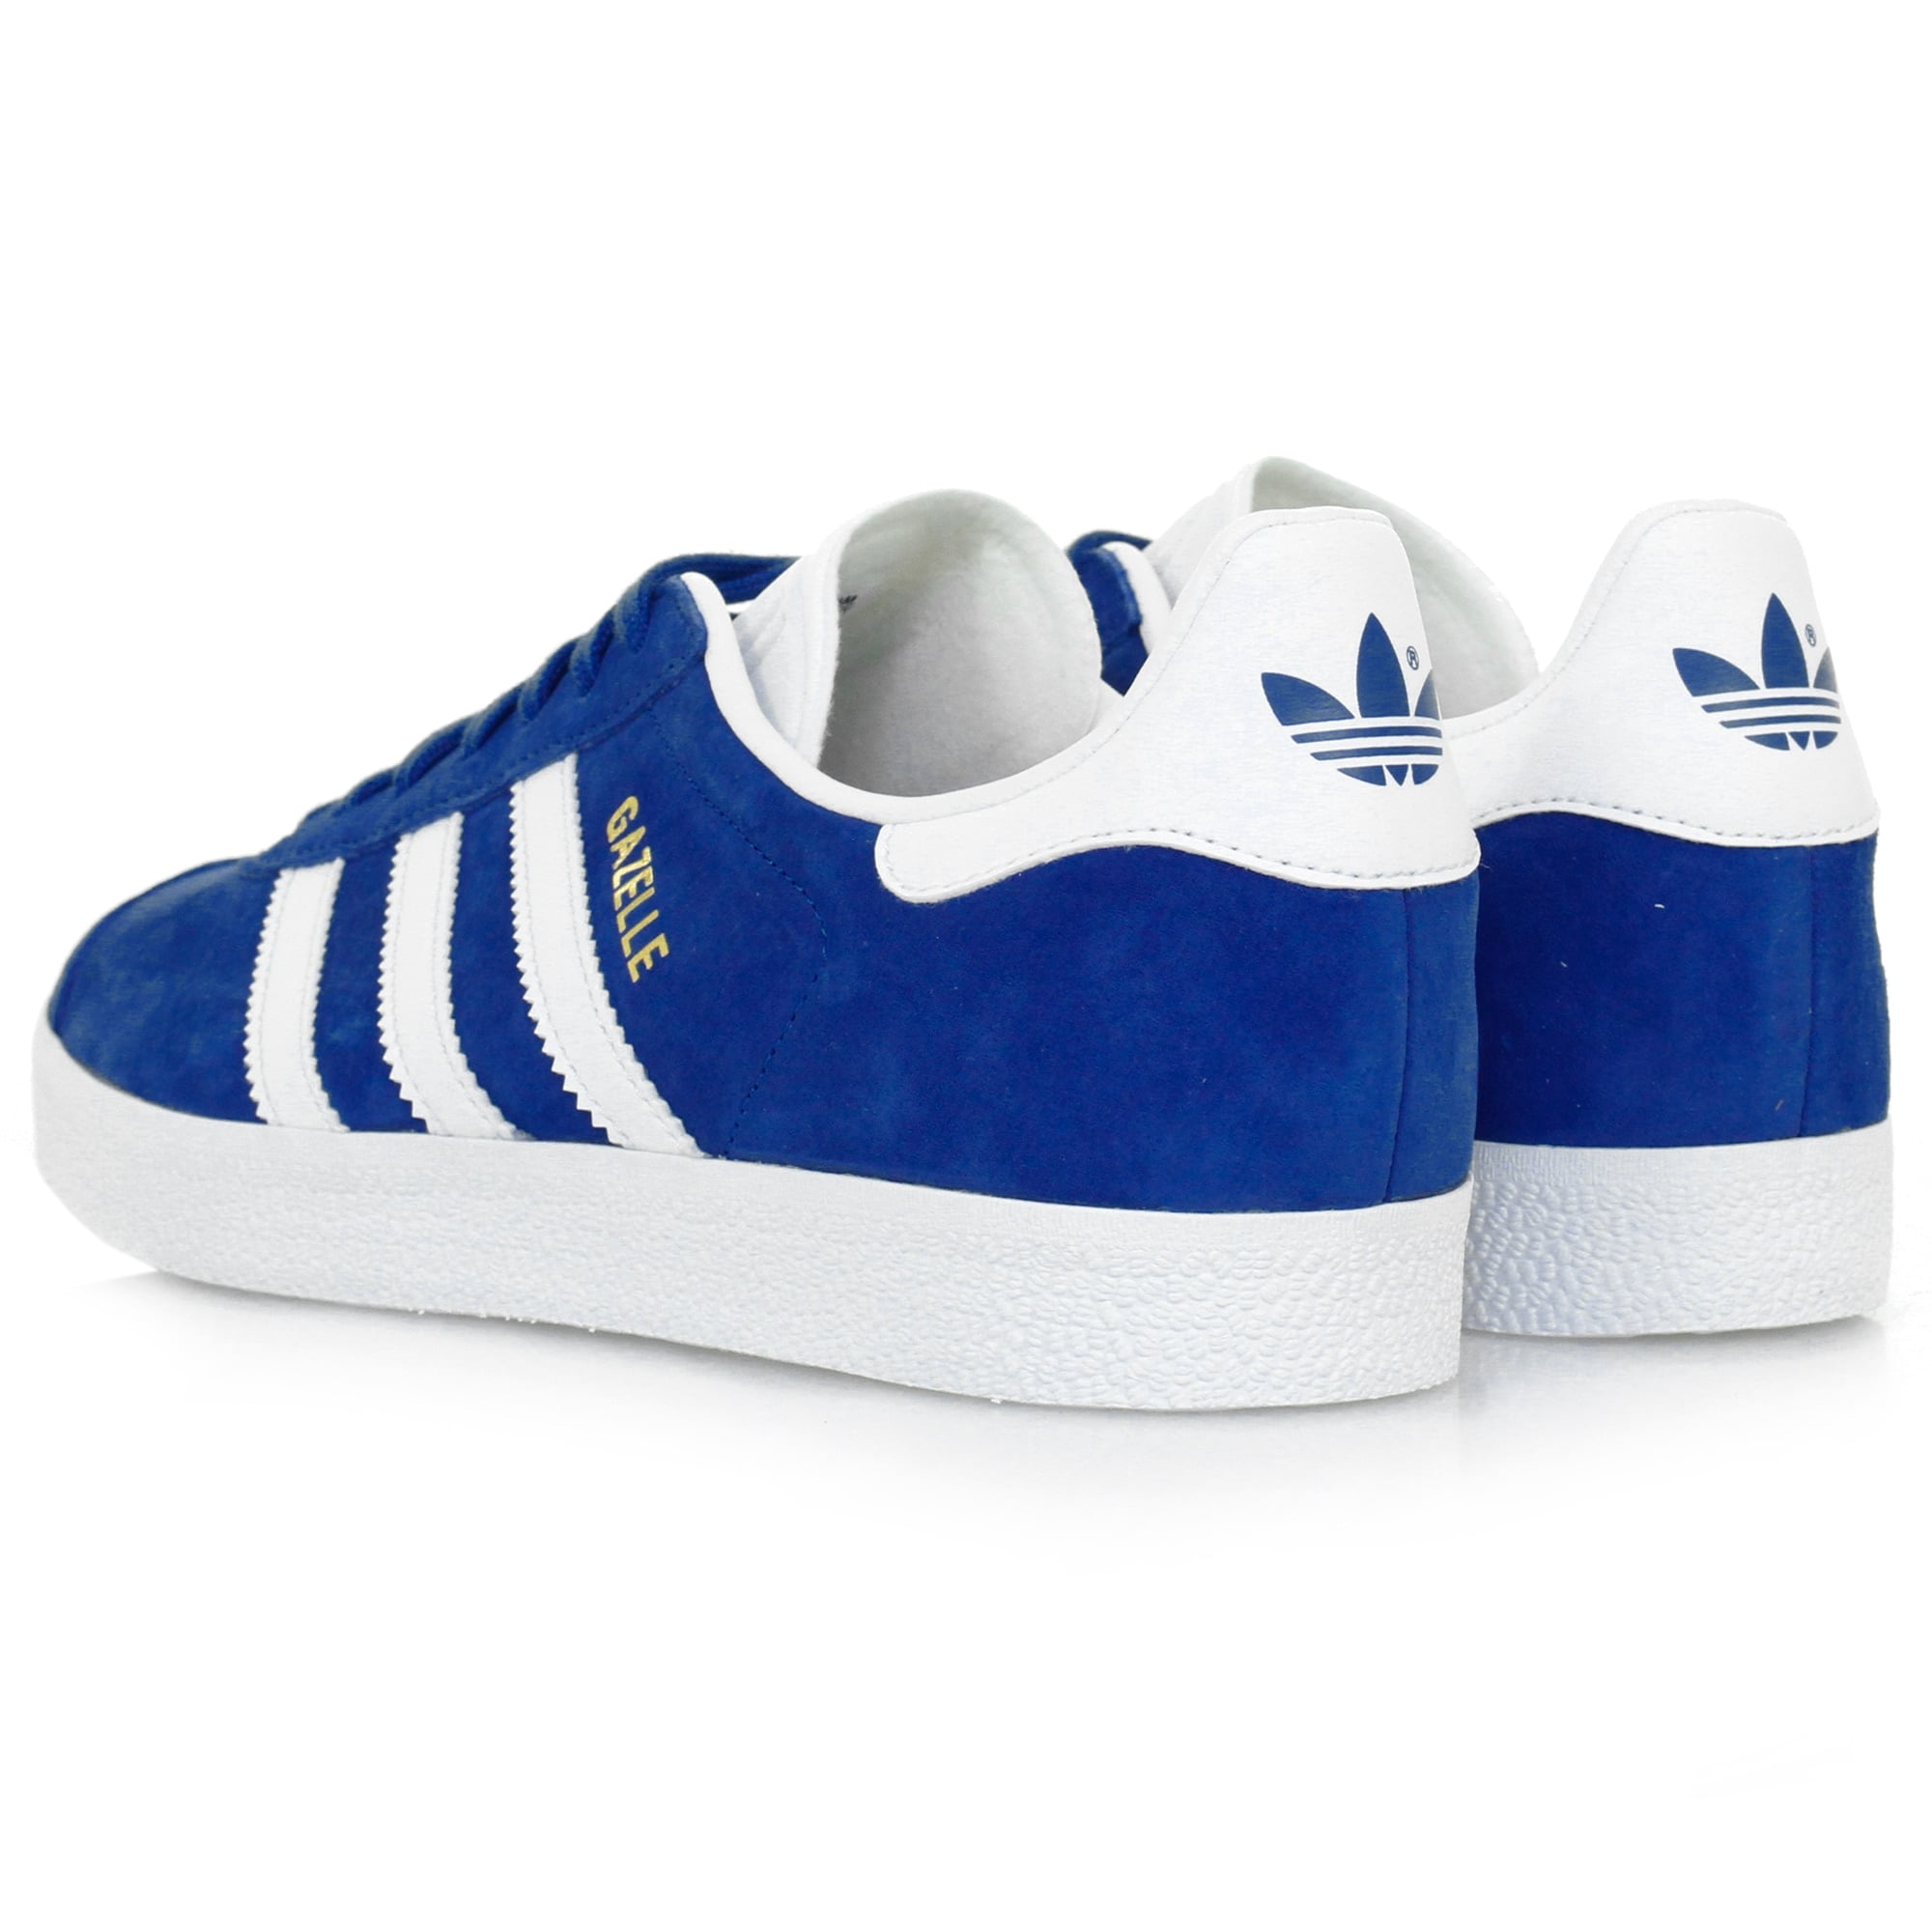 79a7cf3a9b5ff3 Buy blue suede adidas gazelle   OFF68% Discounted